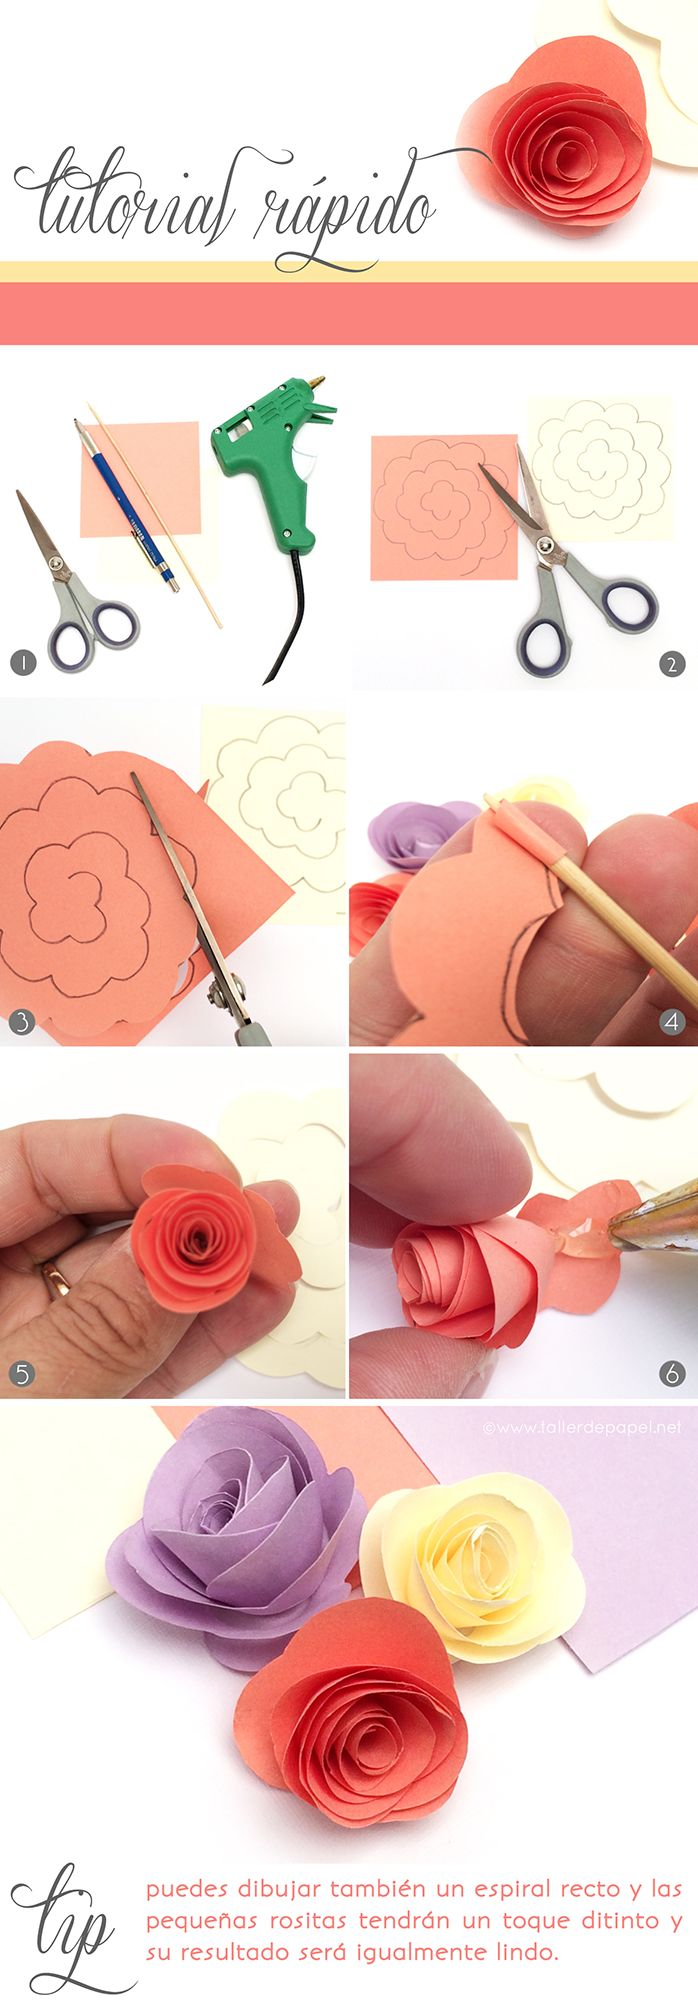 DIY Tutorial Rápido: Hoy como hacer mini rositas de papel! Sigue este simple…